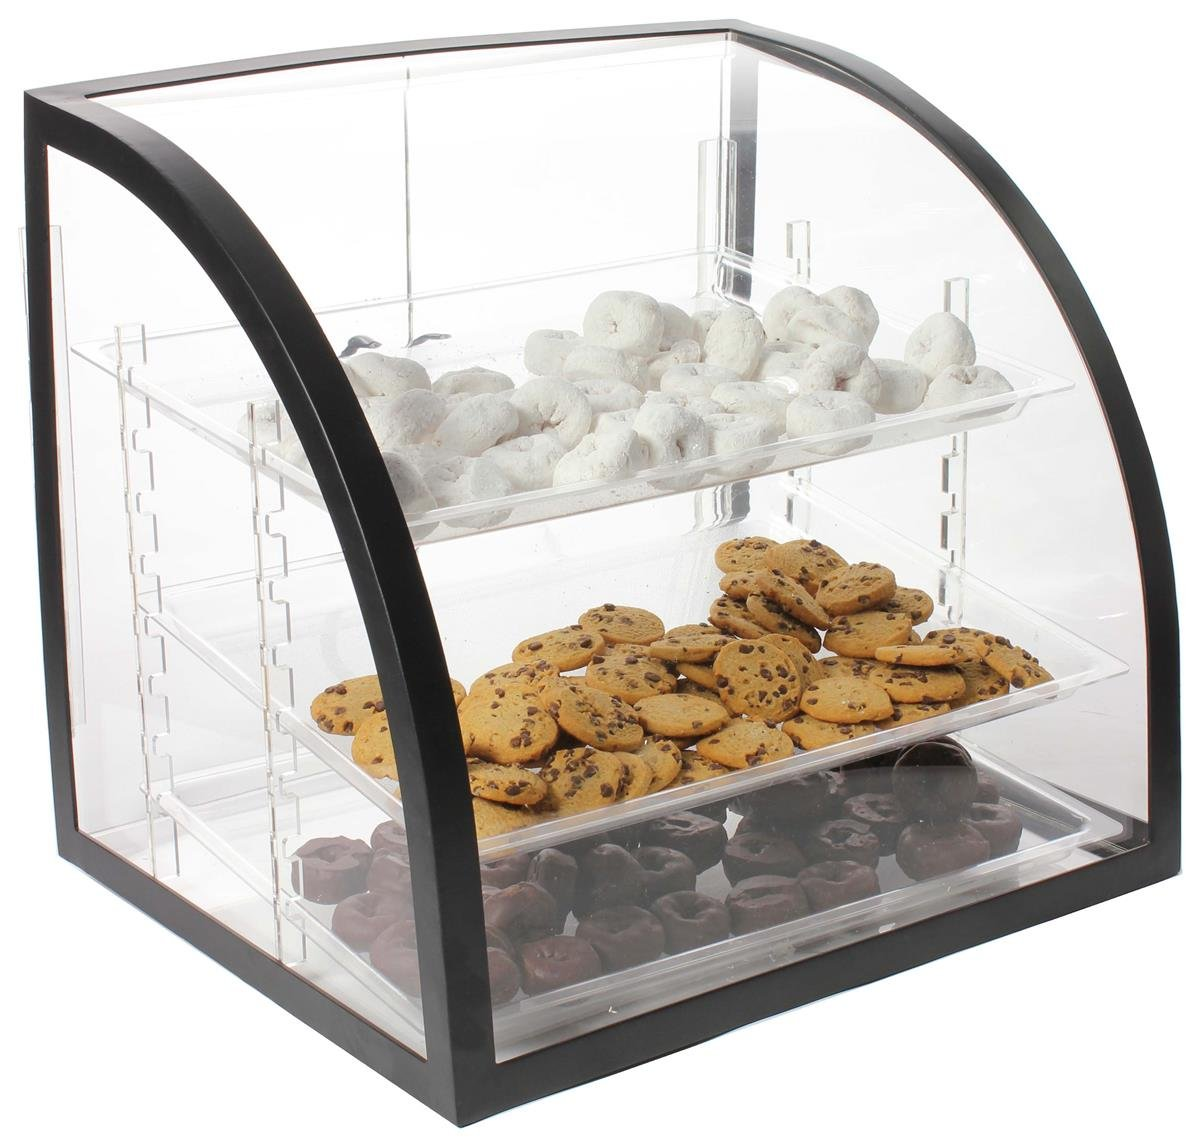 Countertop Bakery Display Case, Clear Acrylic With Black Metal Frame, Rear-loading Doors And 3 Removable Trays - 18 x 19-1/2 x 16-1/2-Inch by Displays2go